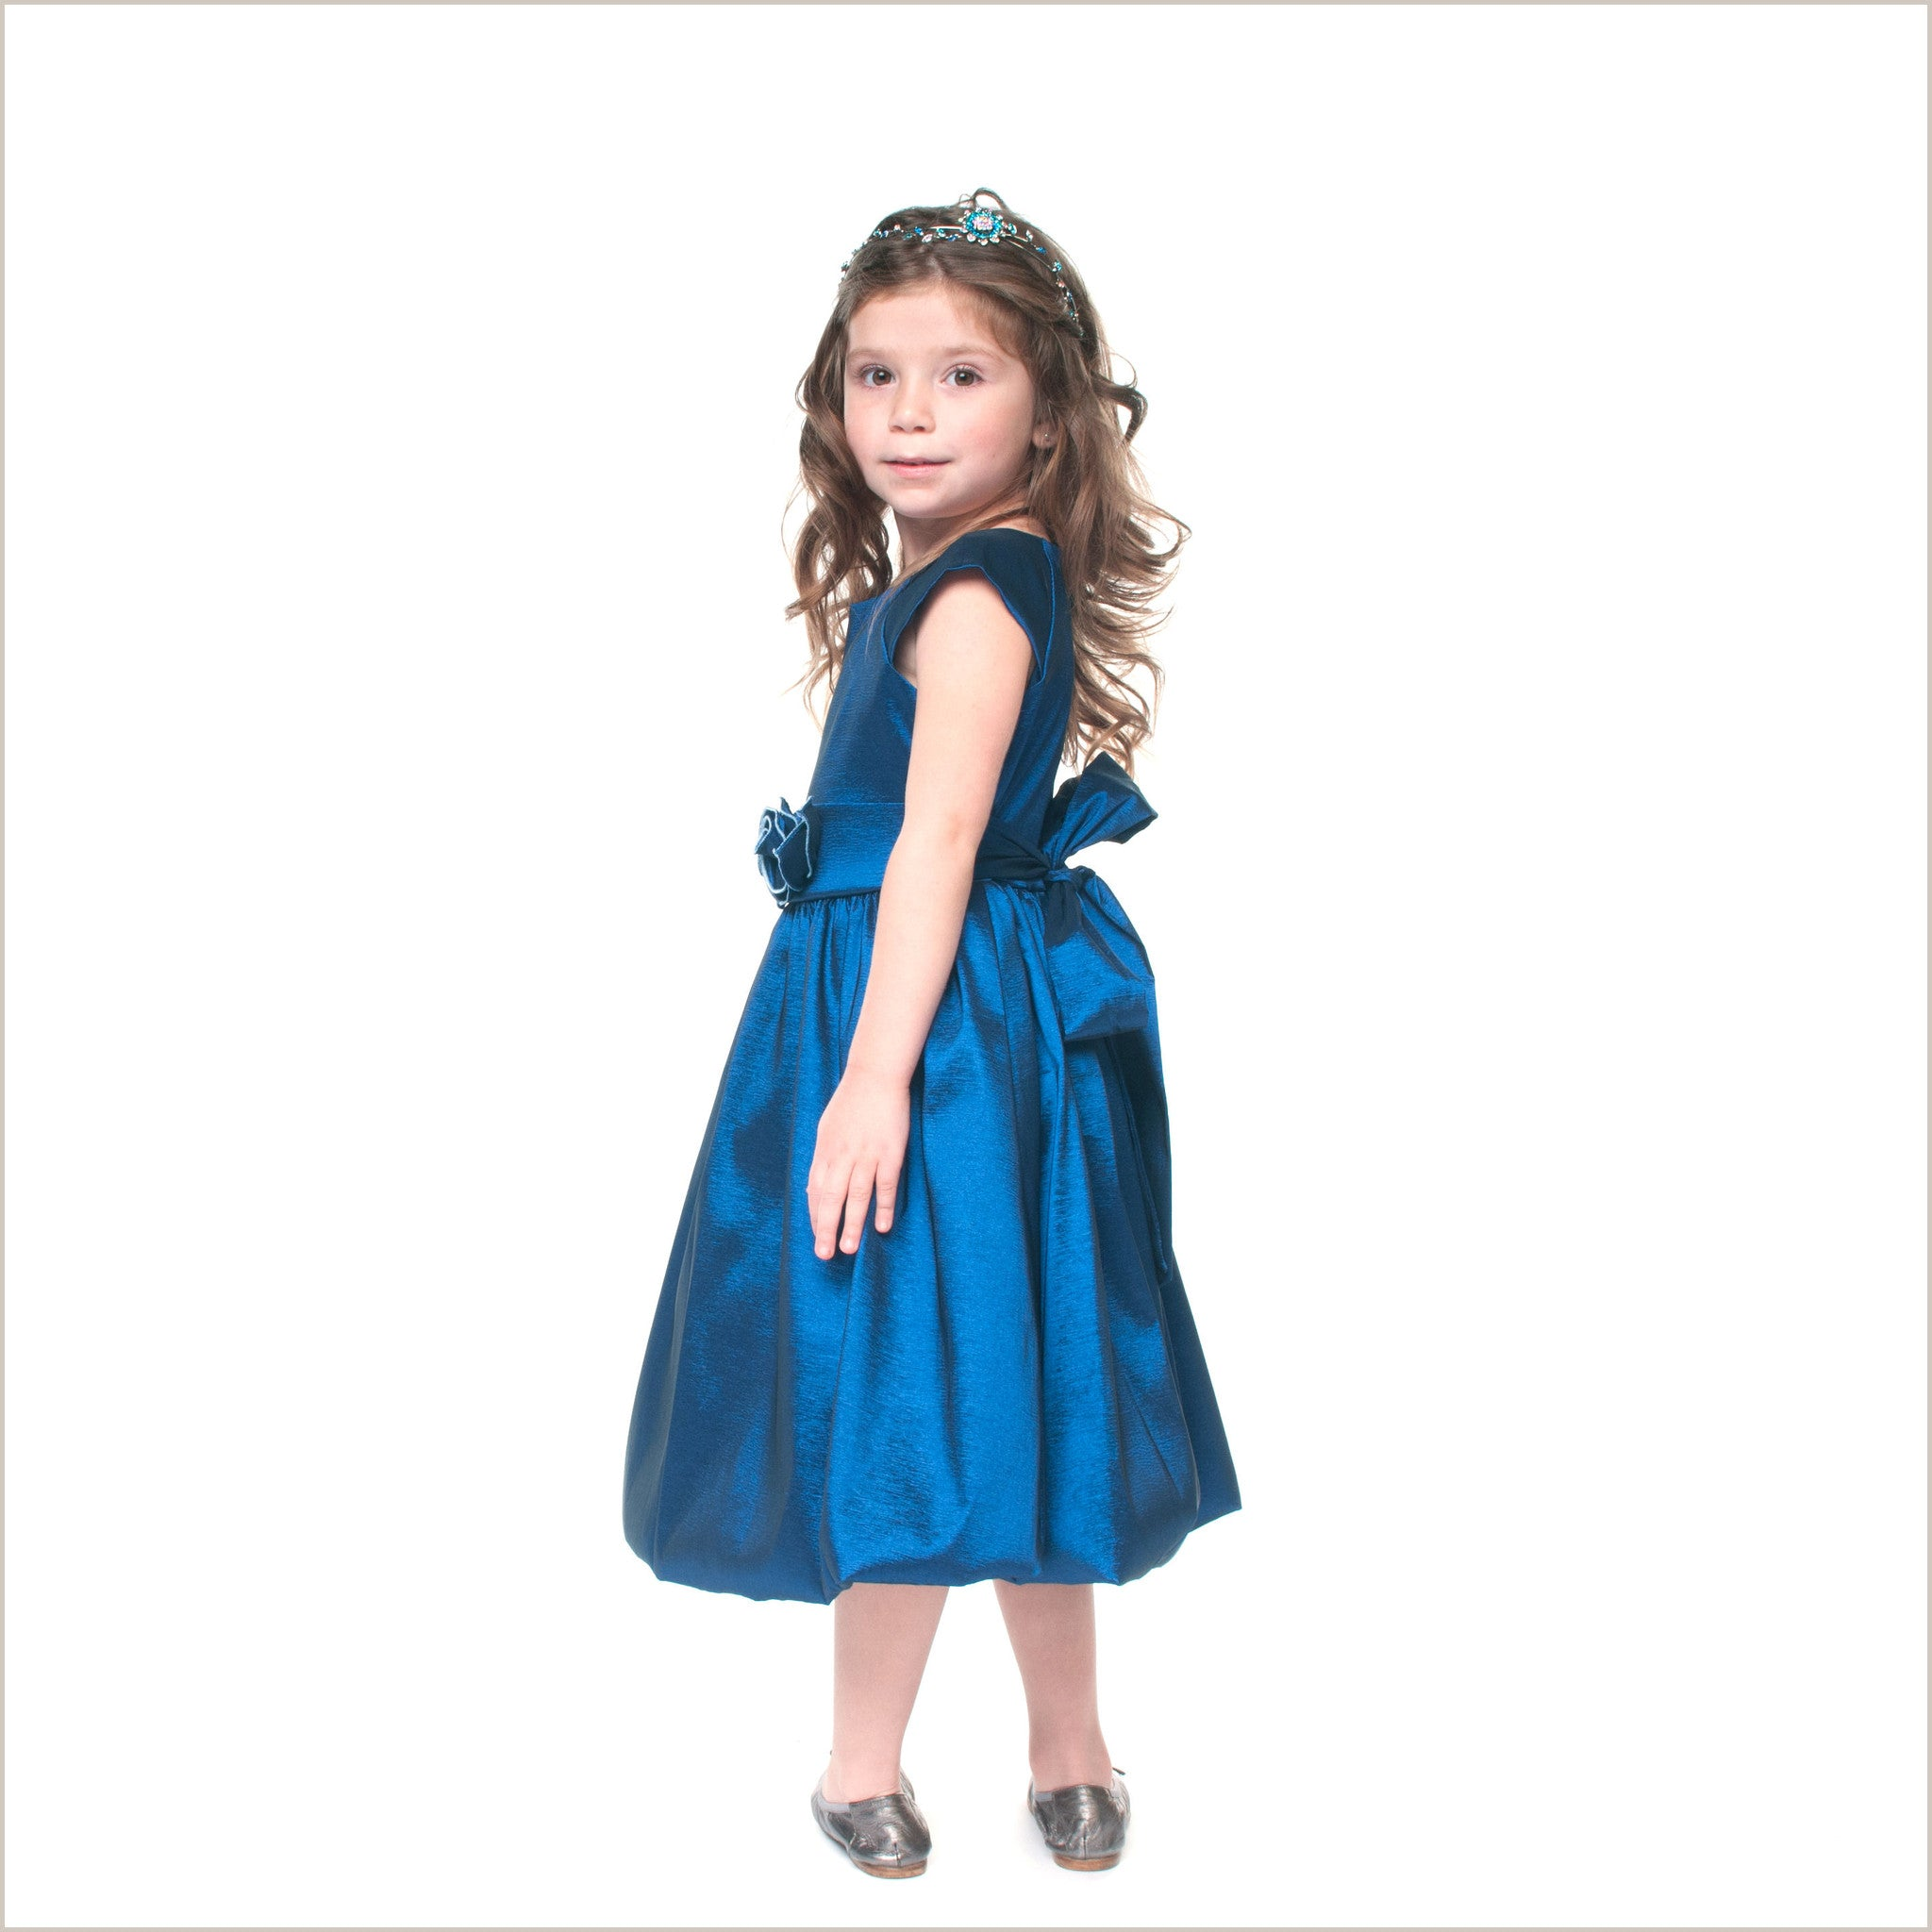 Julia dark blue taffeta childrens bridesmaid dress 2 12 years julia dark blue taffeta childrens bridesmaid dress ombrellifo Image collections